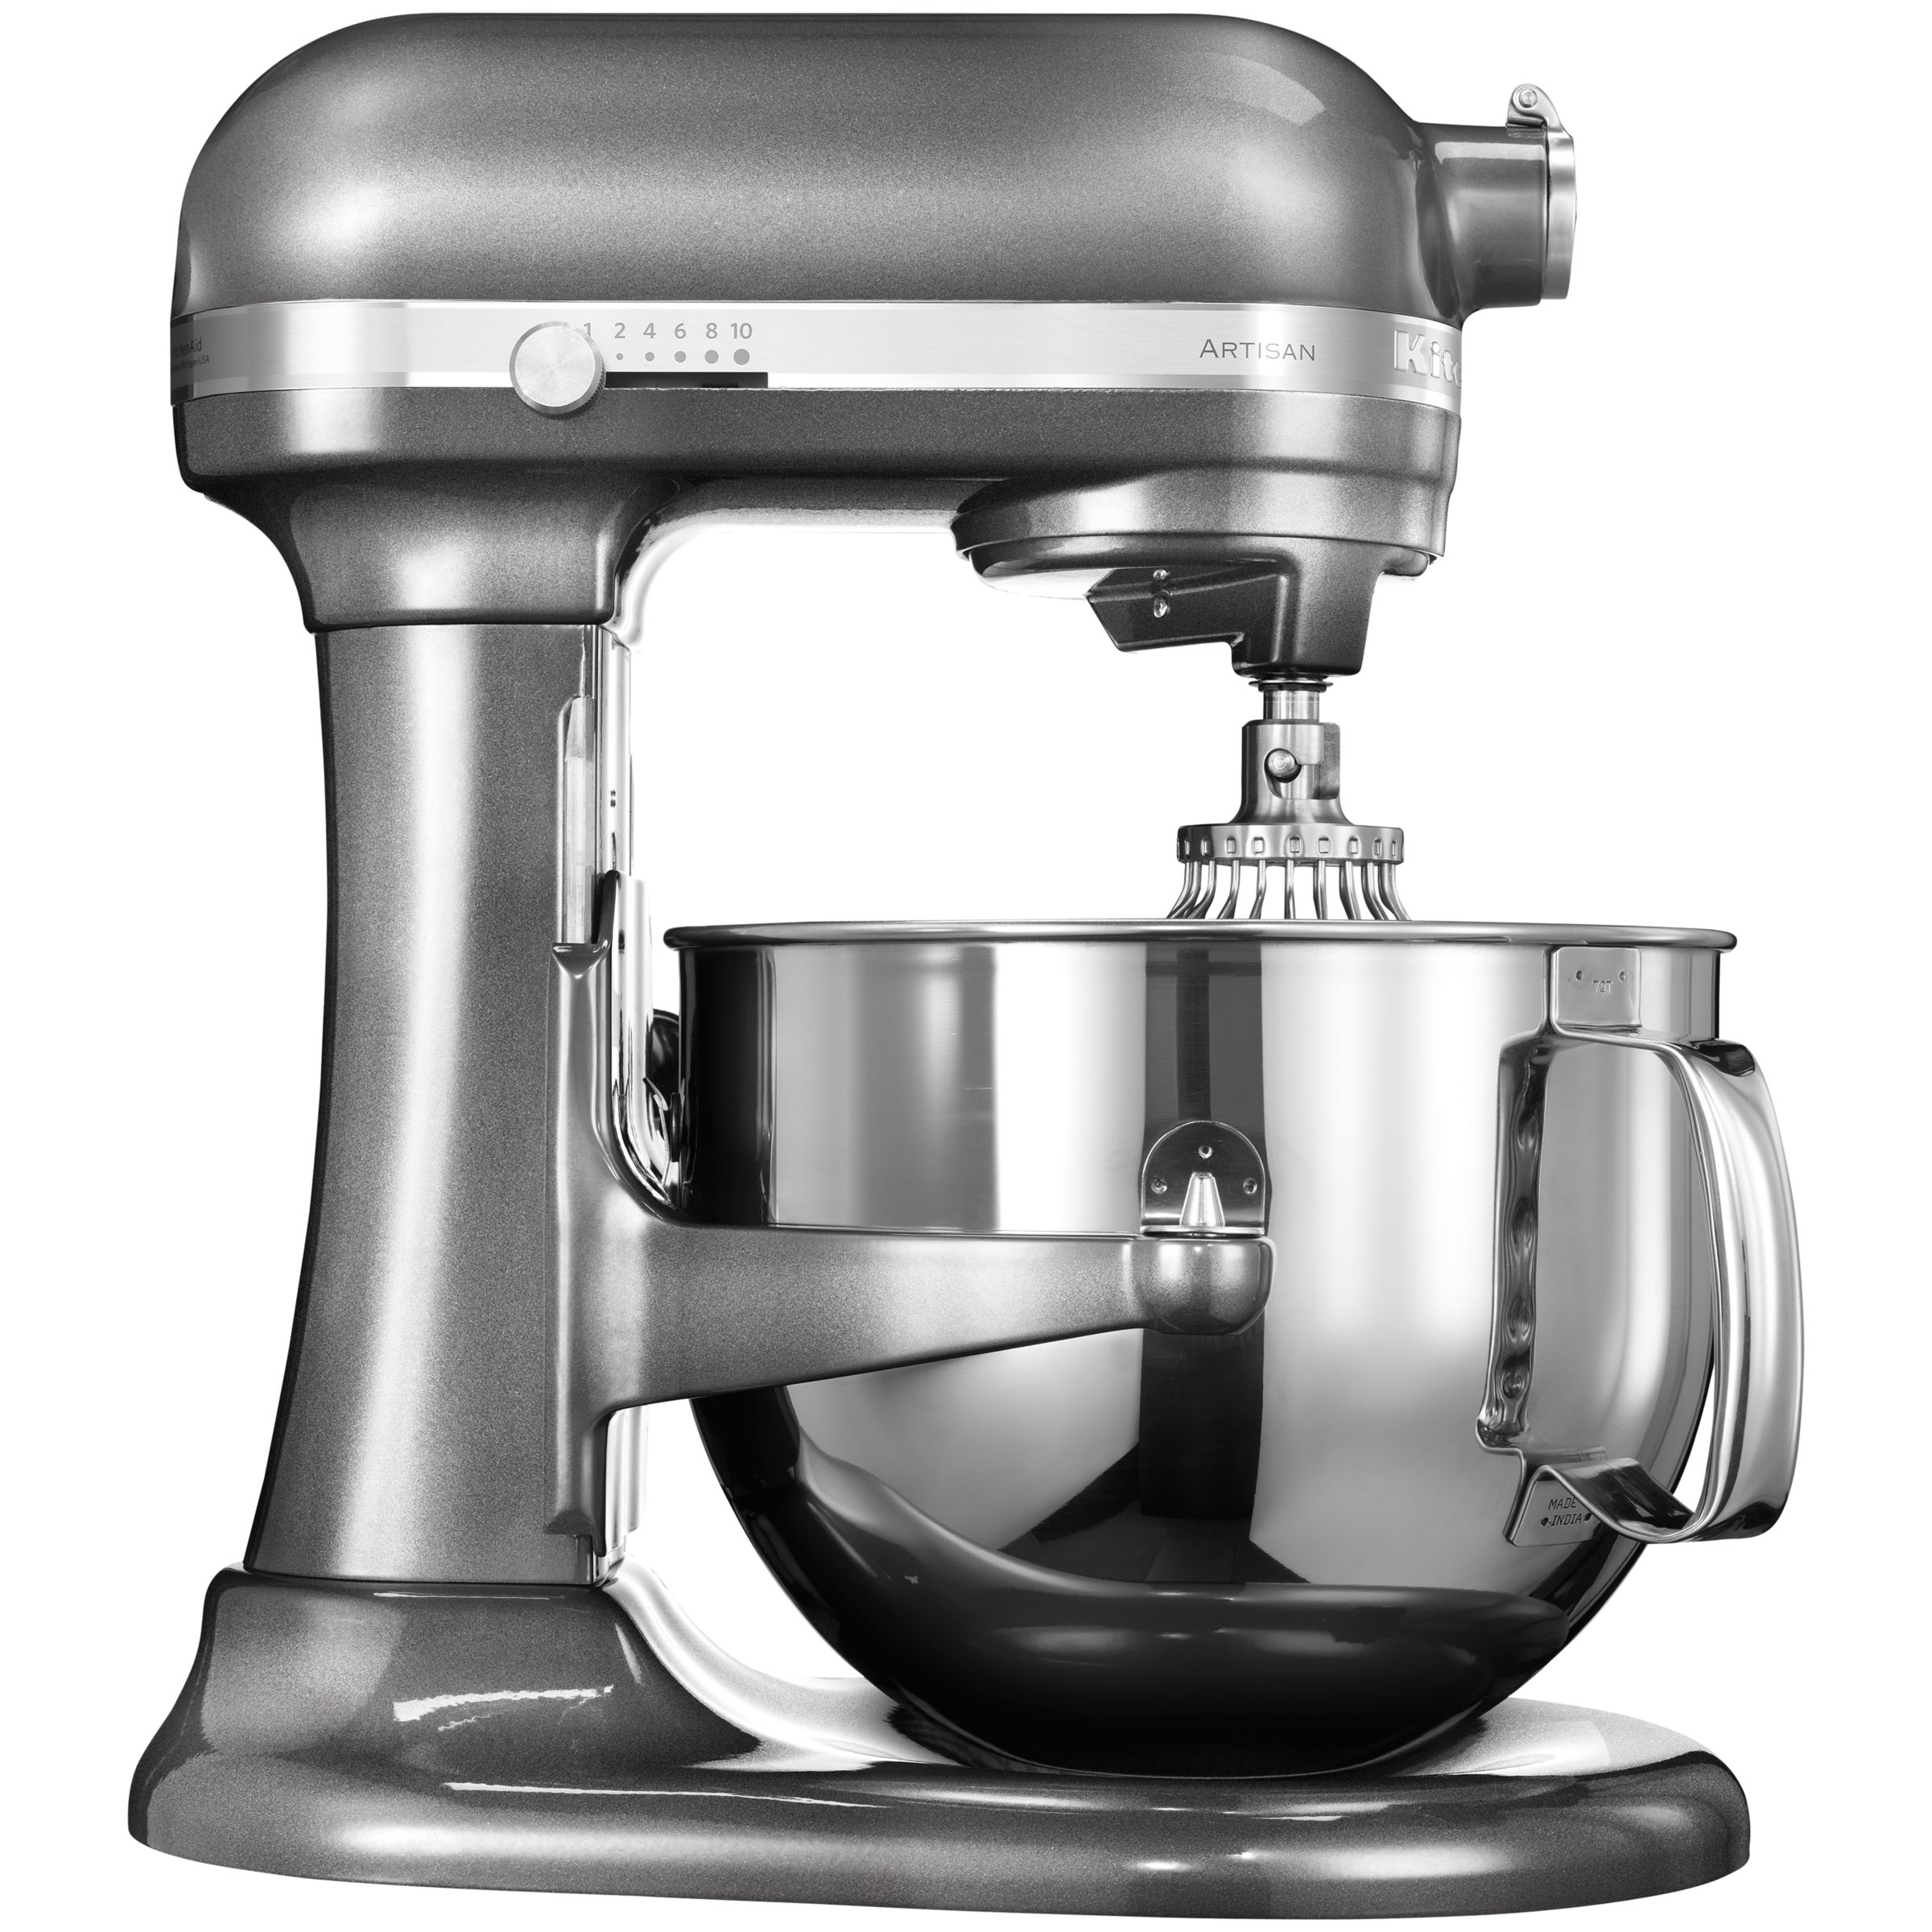 kitchenaid 5ksm7580xbms small appliance compare prices view price